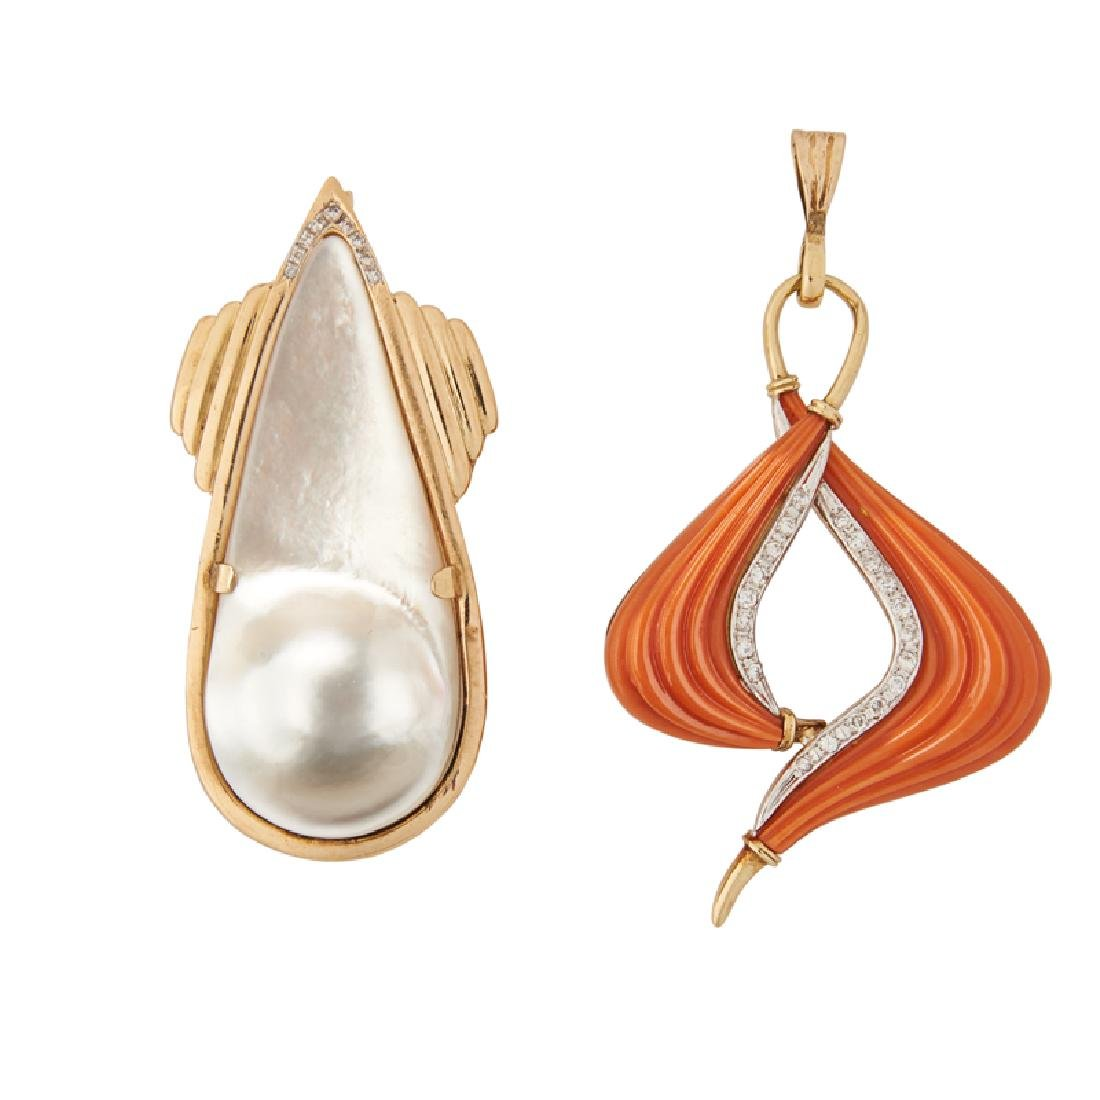 BLISTER PEARL OR CORAL YELLOW GOLD PENDANTS